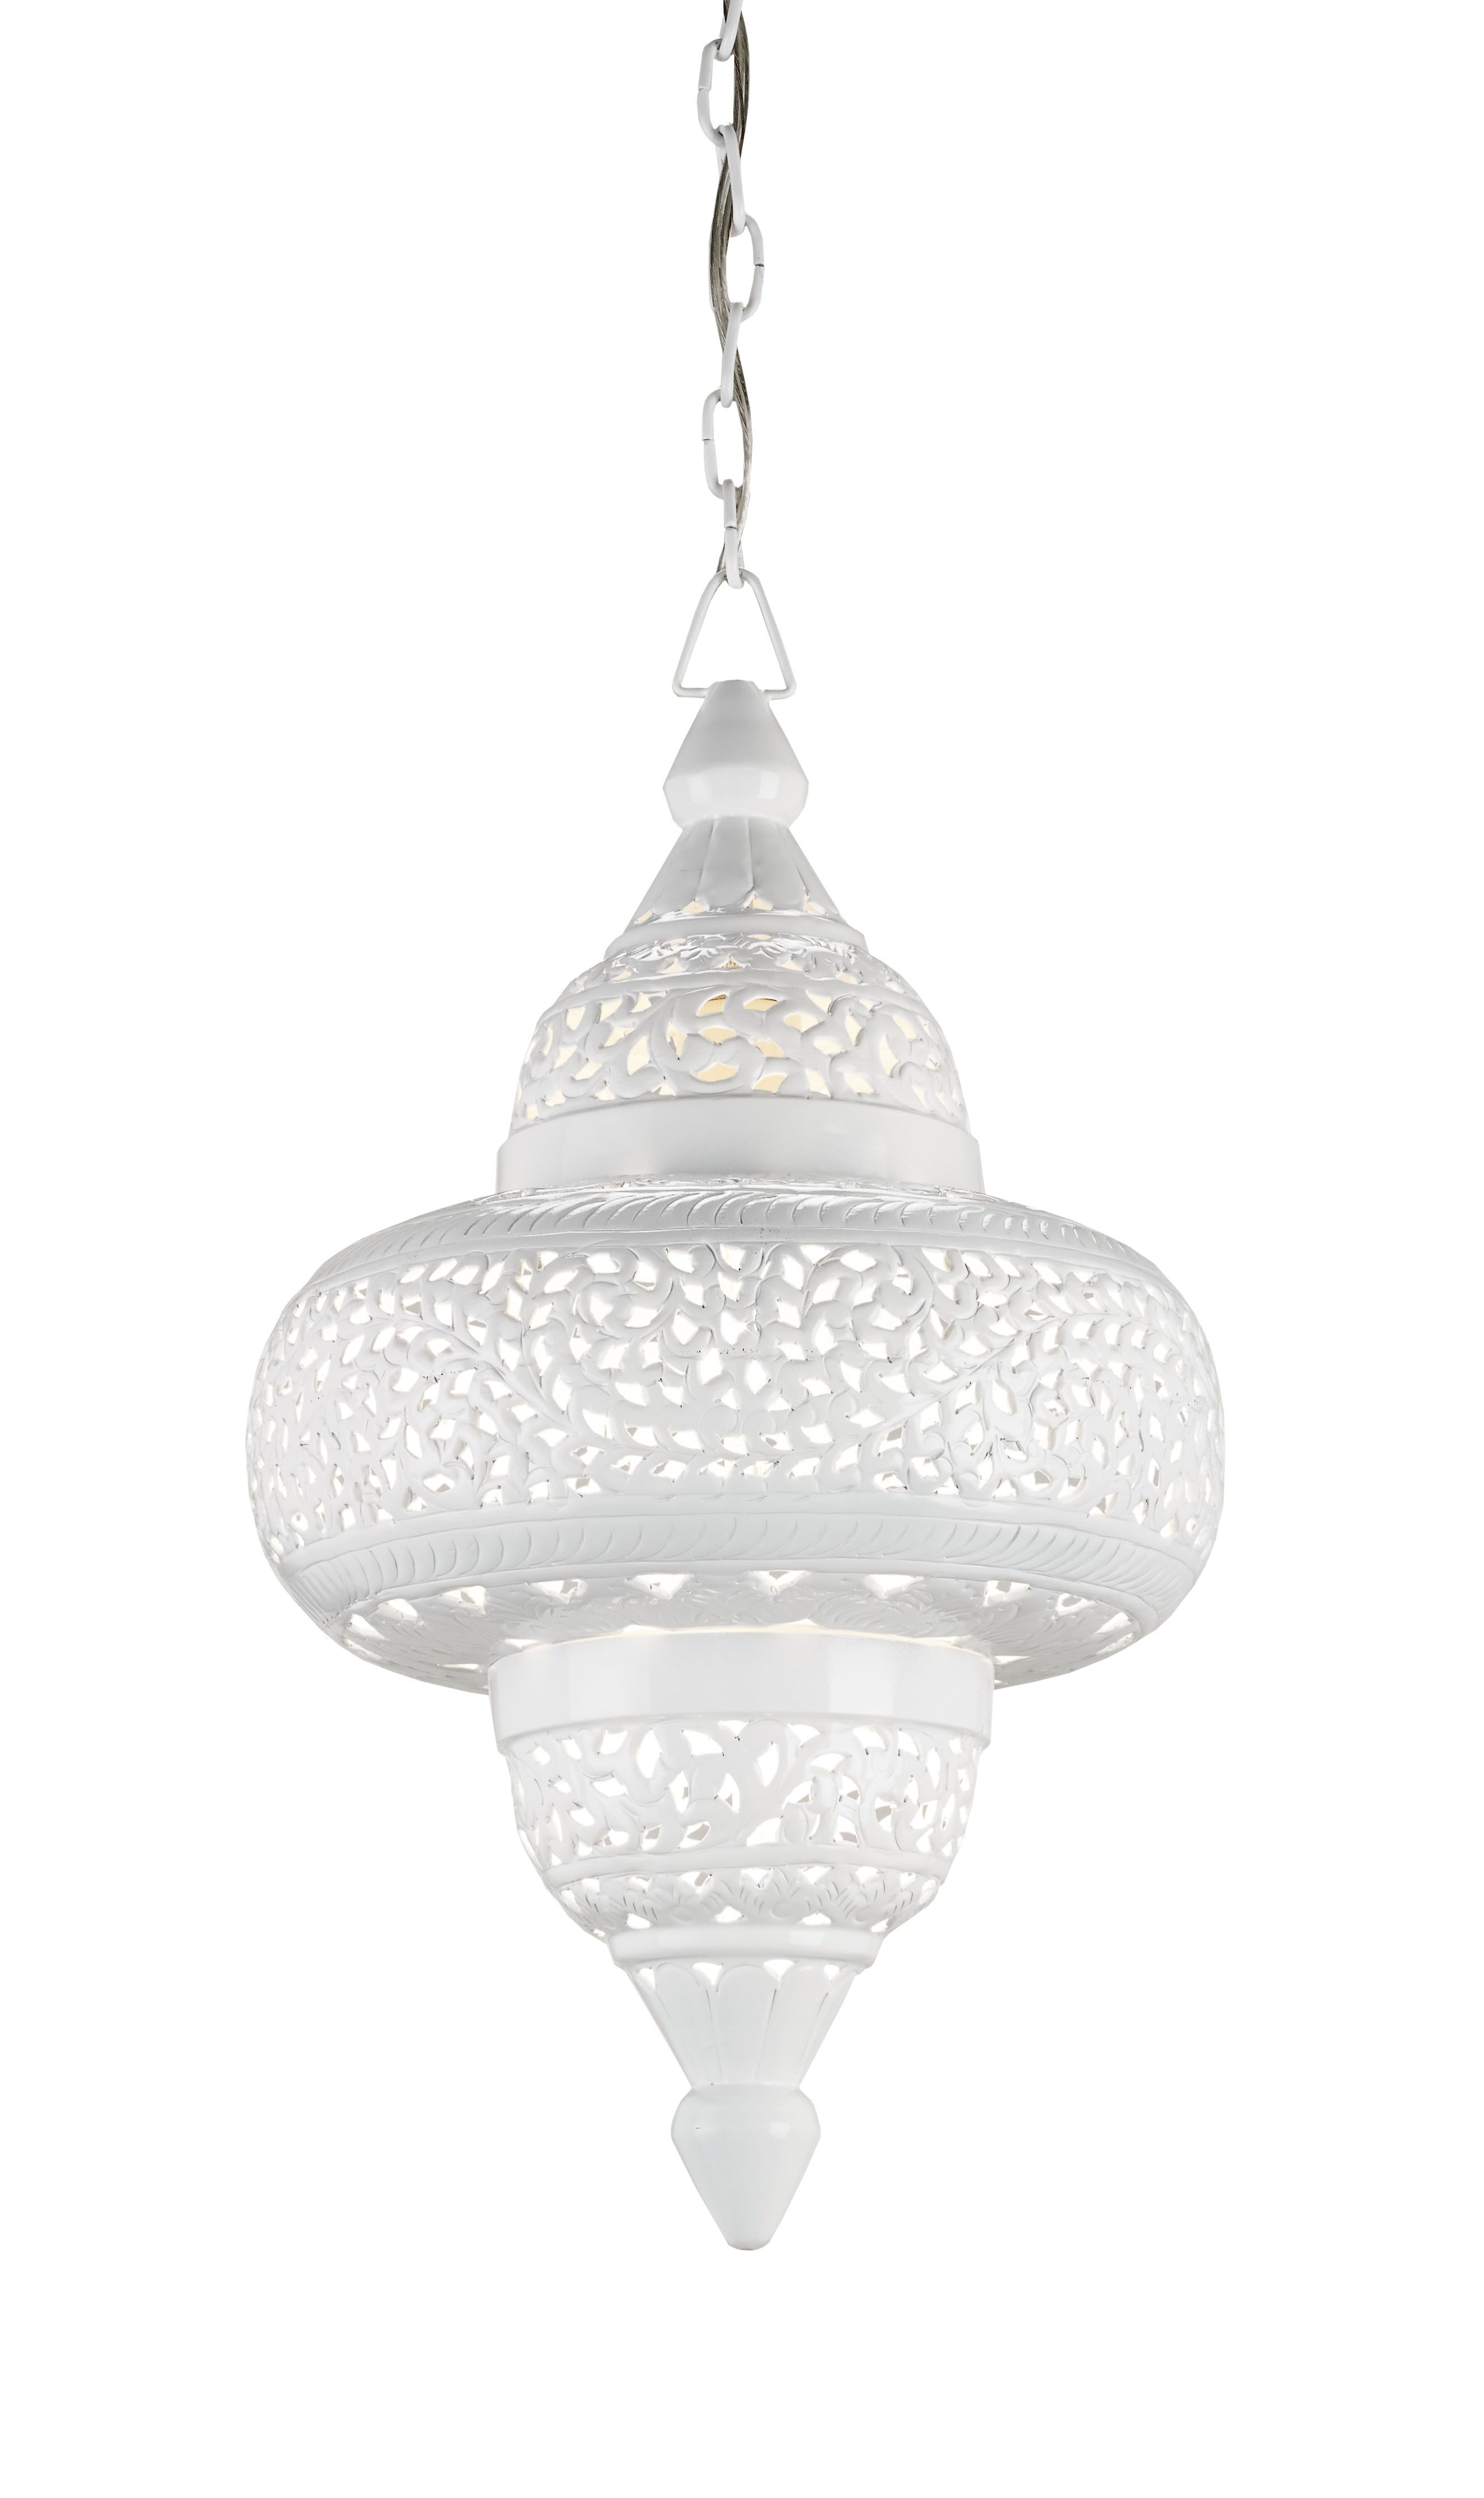 lamp transform light lantern mosaic moravian will your fixtures turkish pendants home bohemian lamps star that rattan chandelier moroccan holders pendant candle capiz hanging li for dining room shell lighting